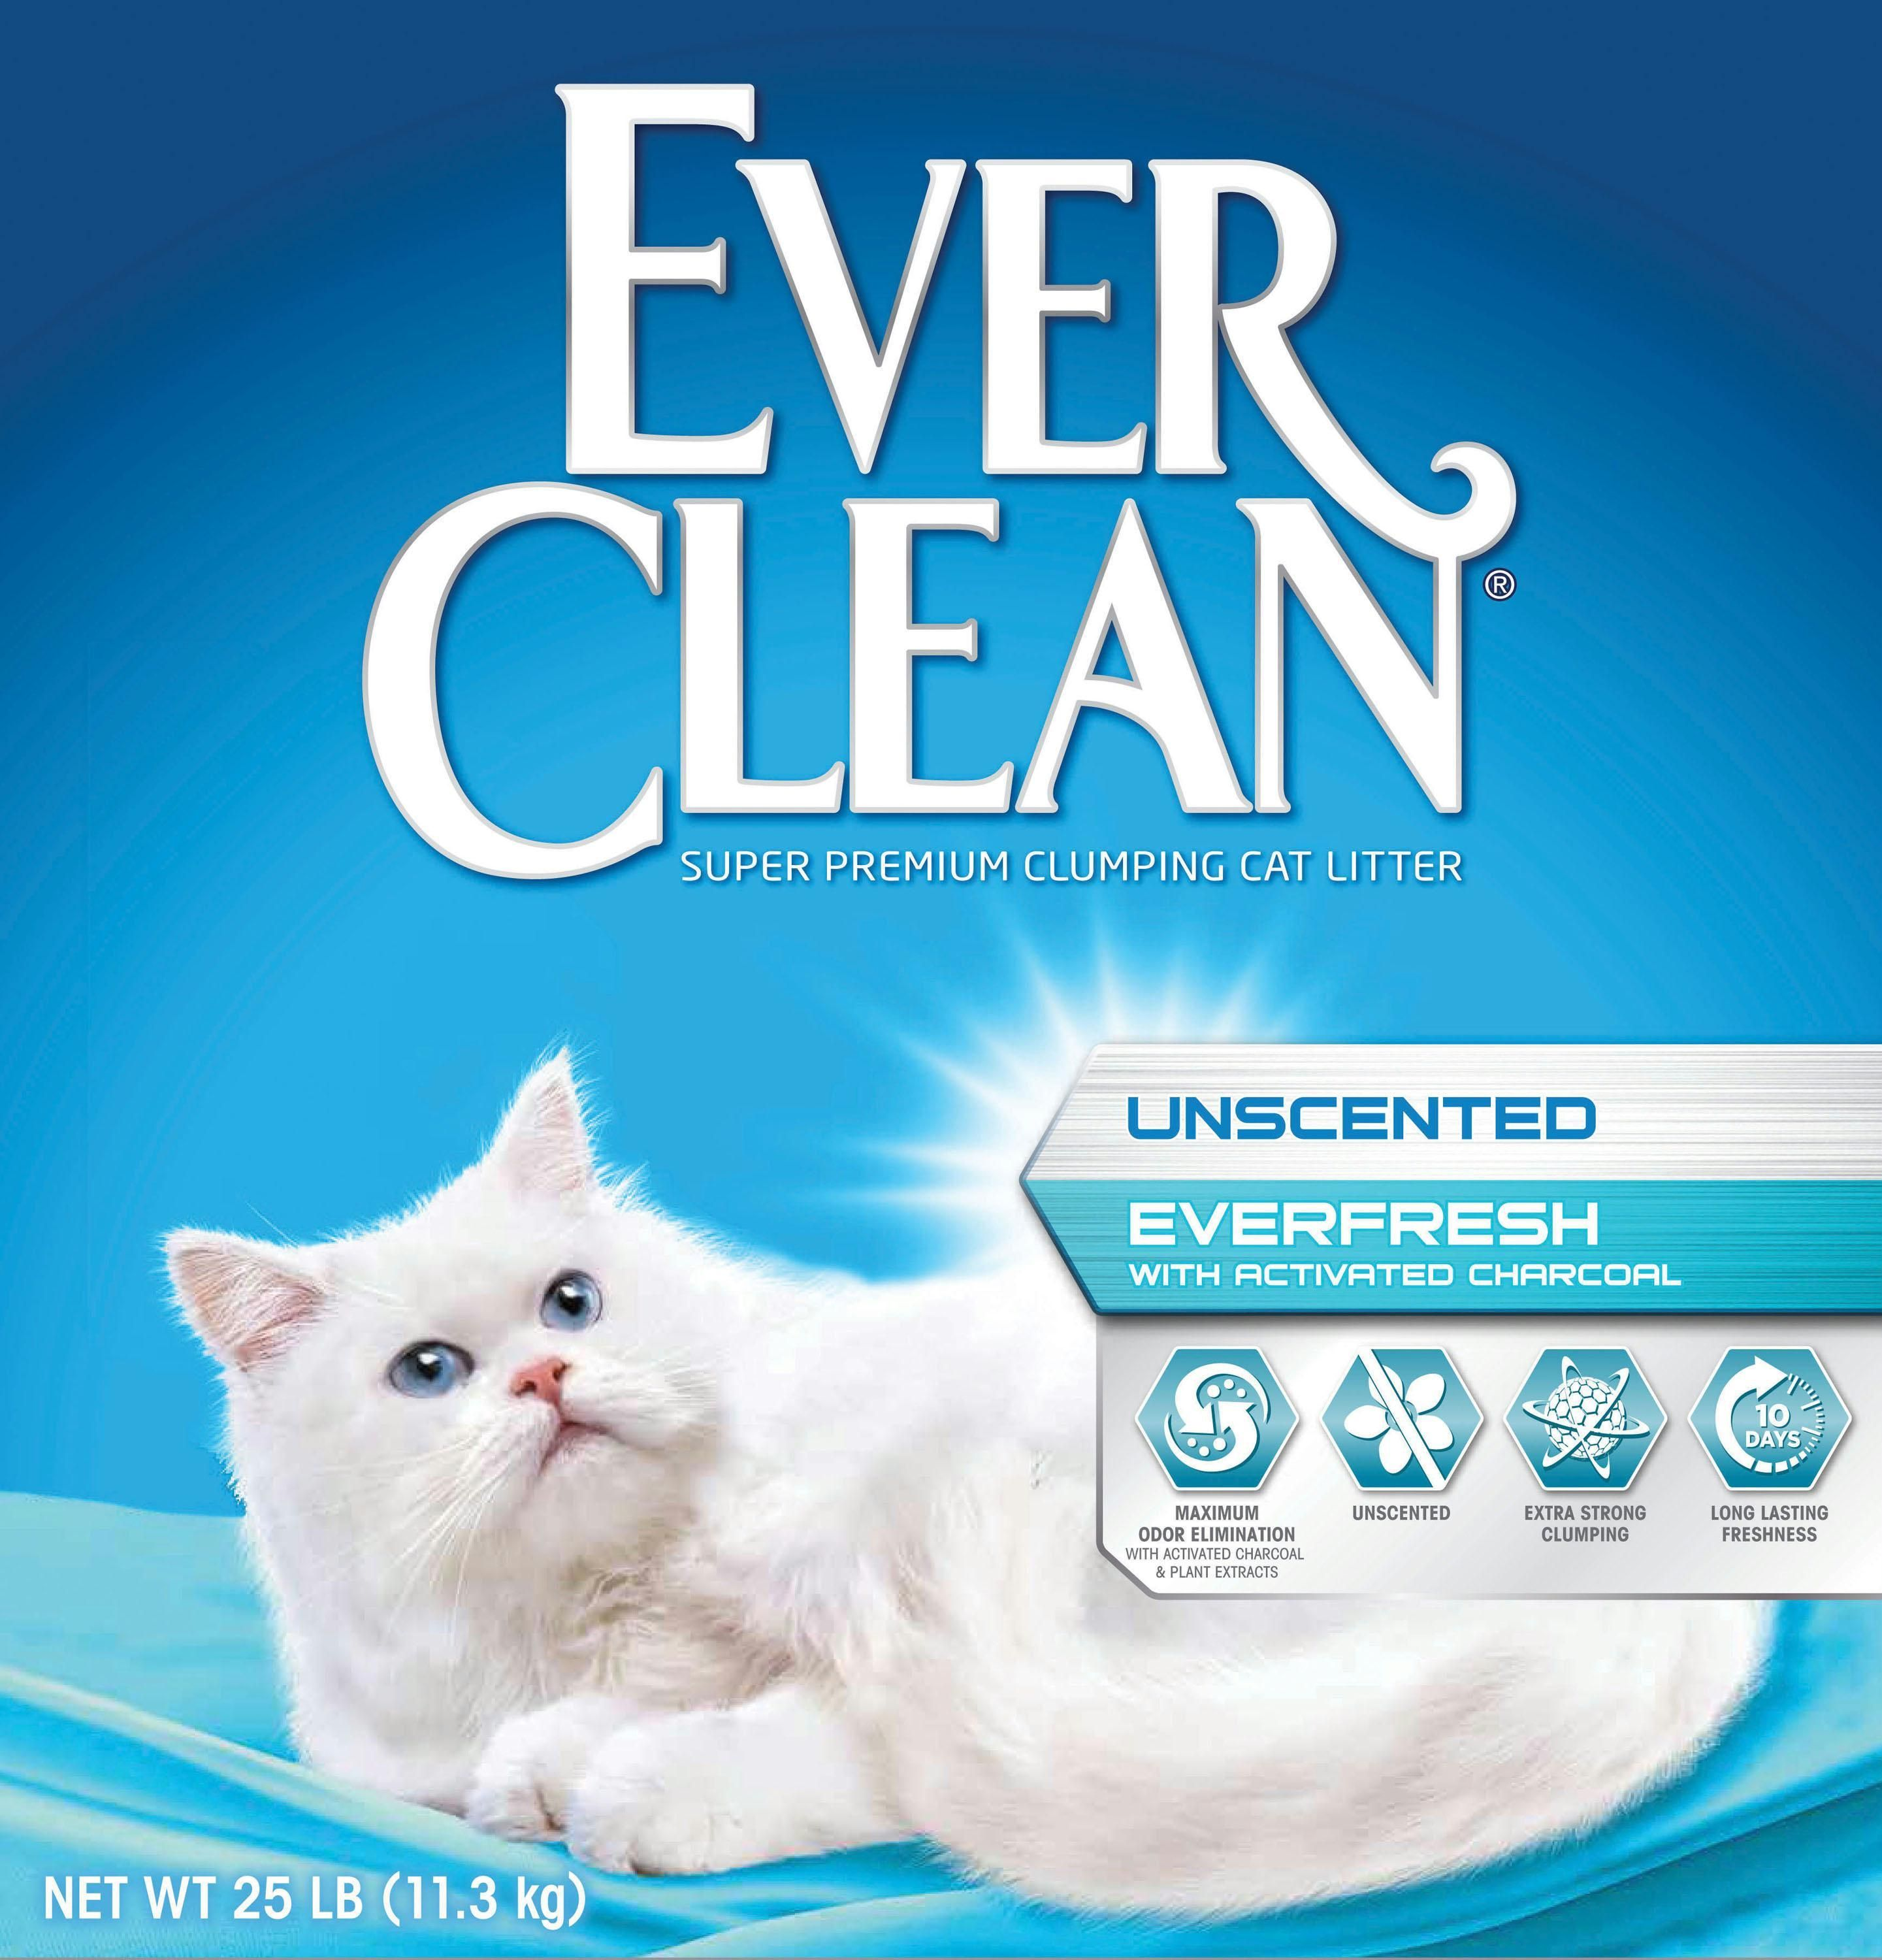 Ever Clean Everfresh Activated Charcoal Litter For Cat